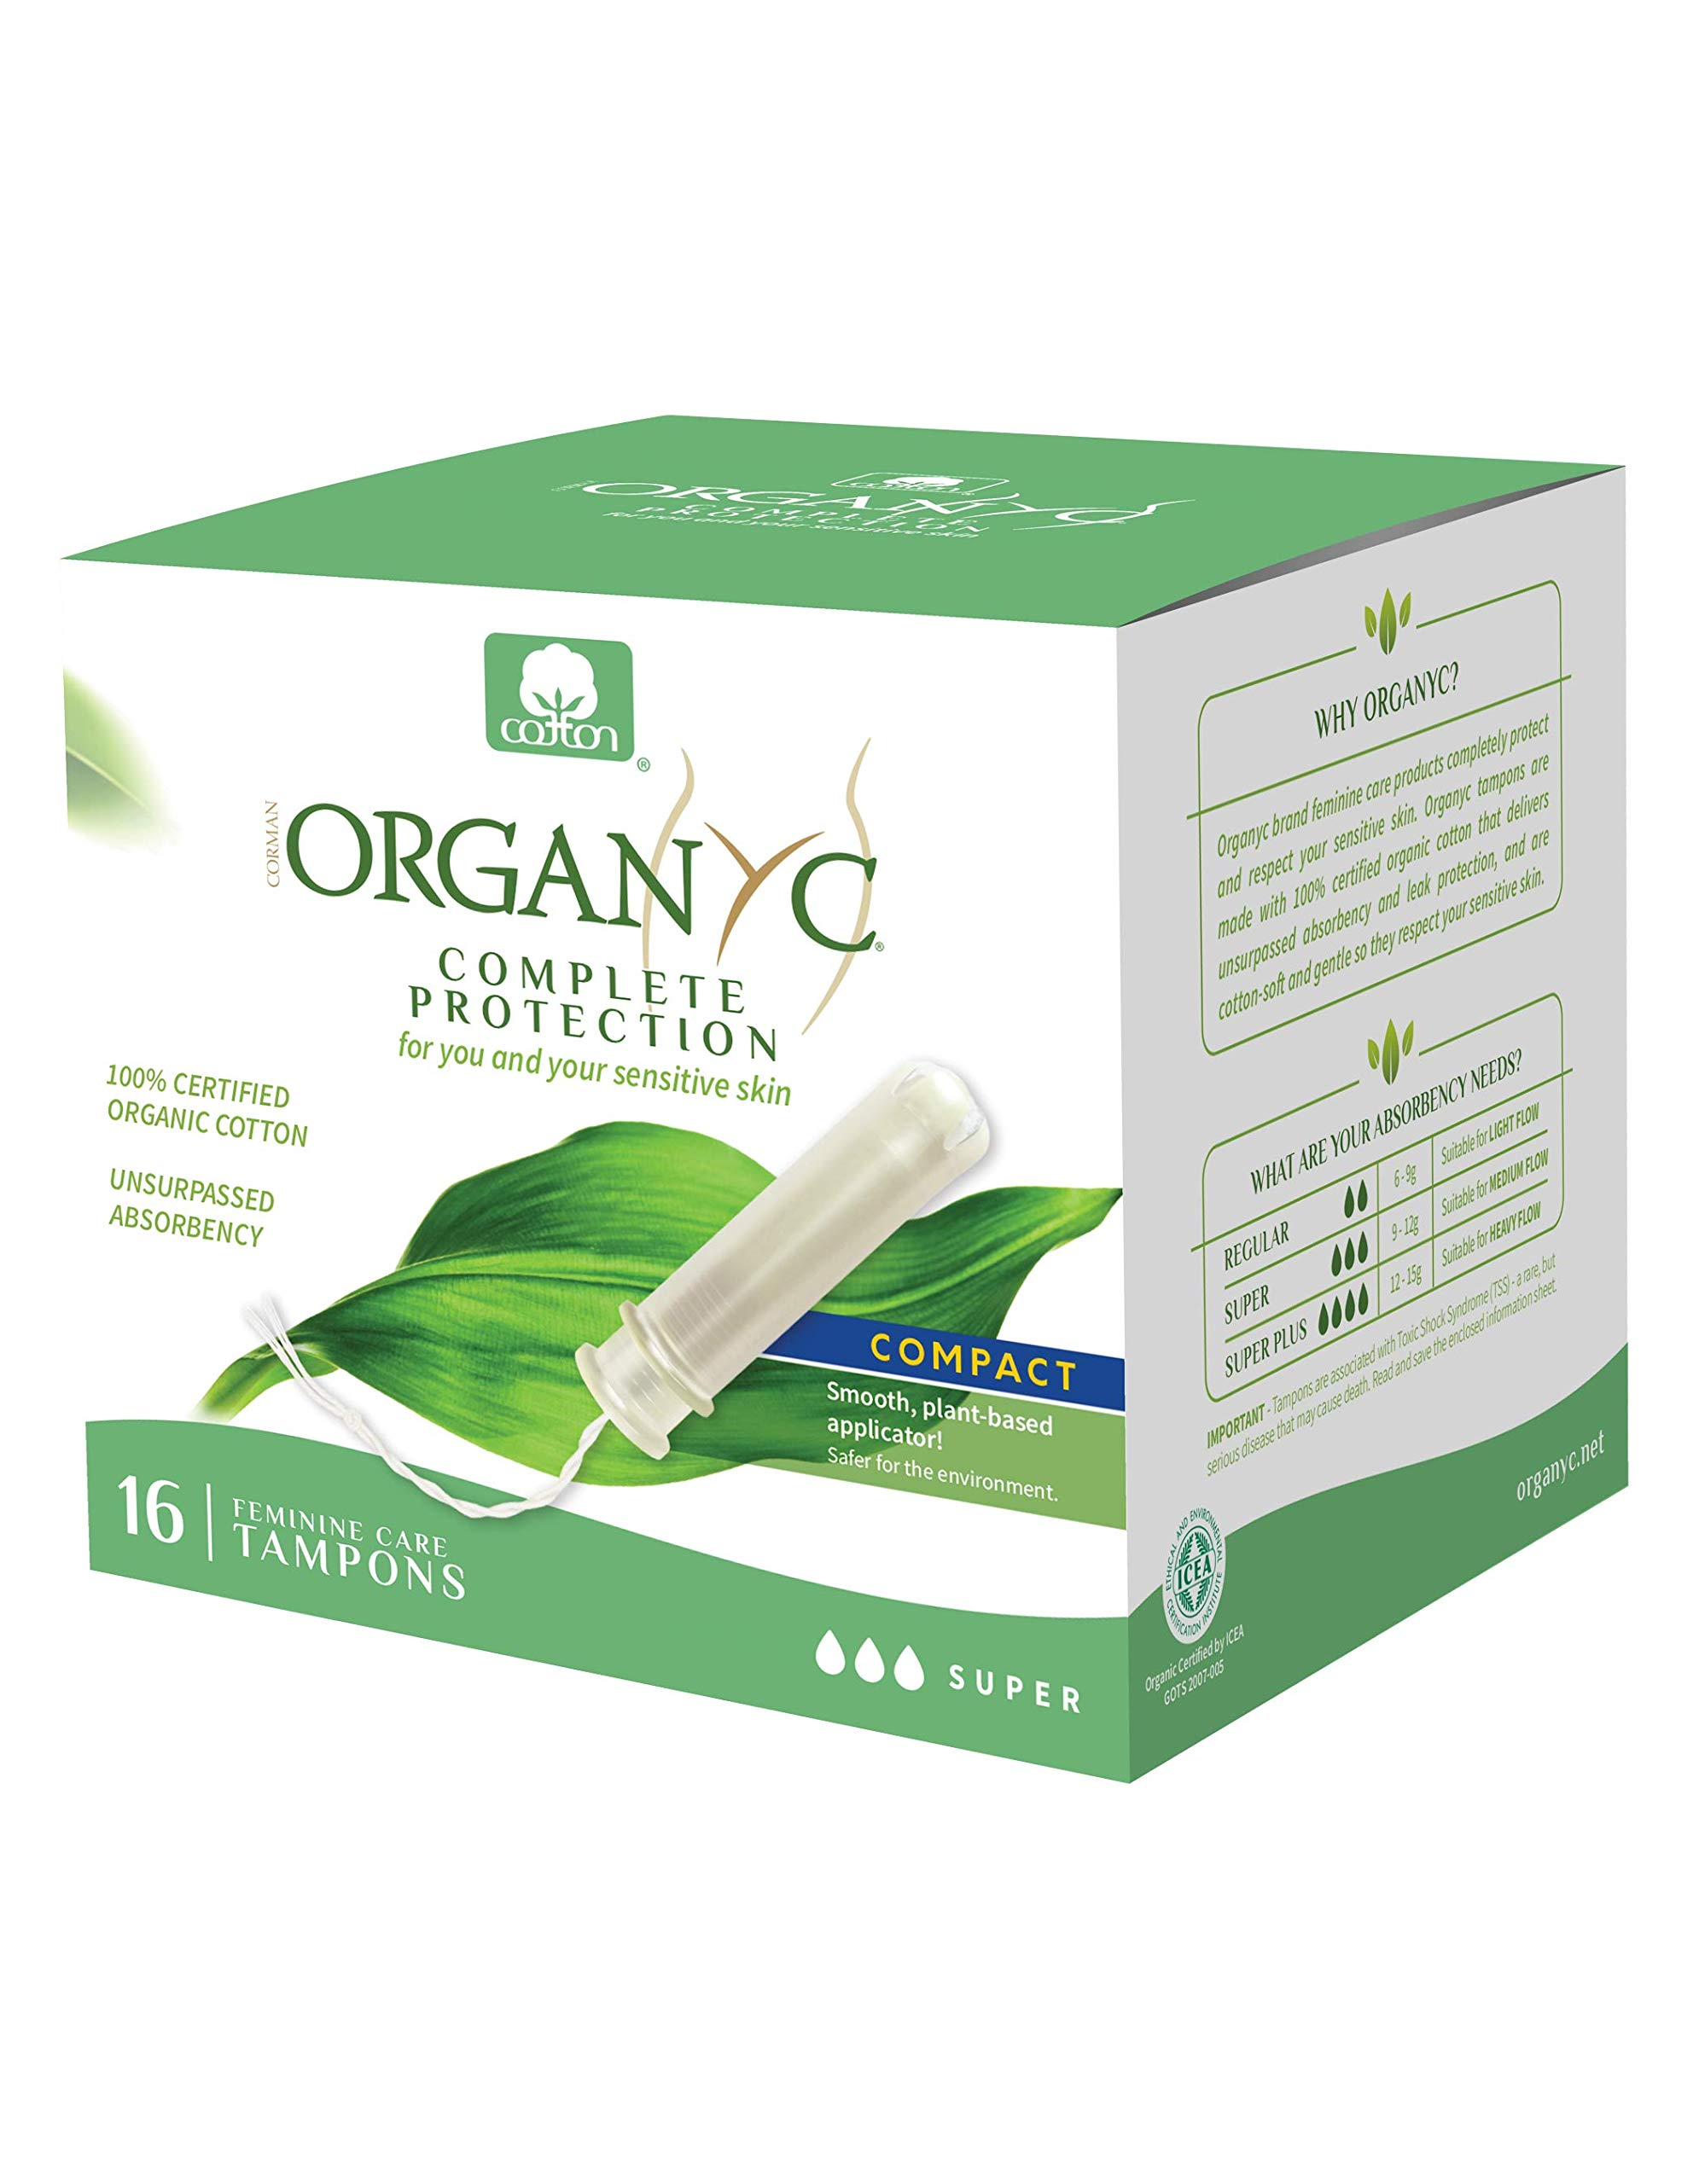 Organyc 100% Certified Organic Cotton Tampons – Plant-Based Eco-Applicator, Super Flow (16 Count)